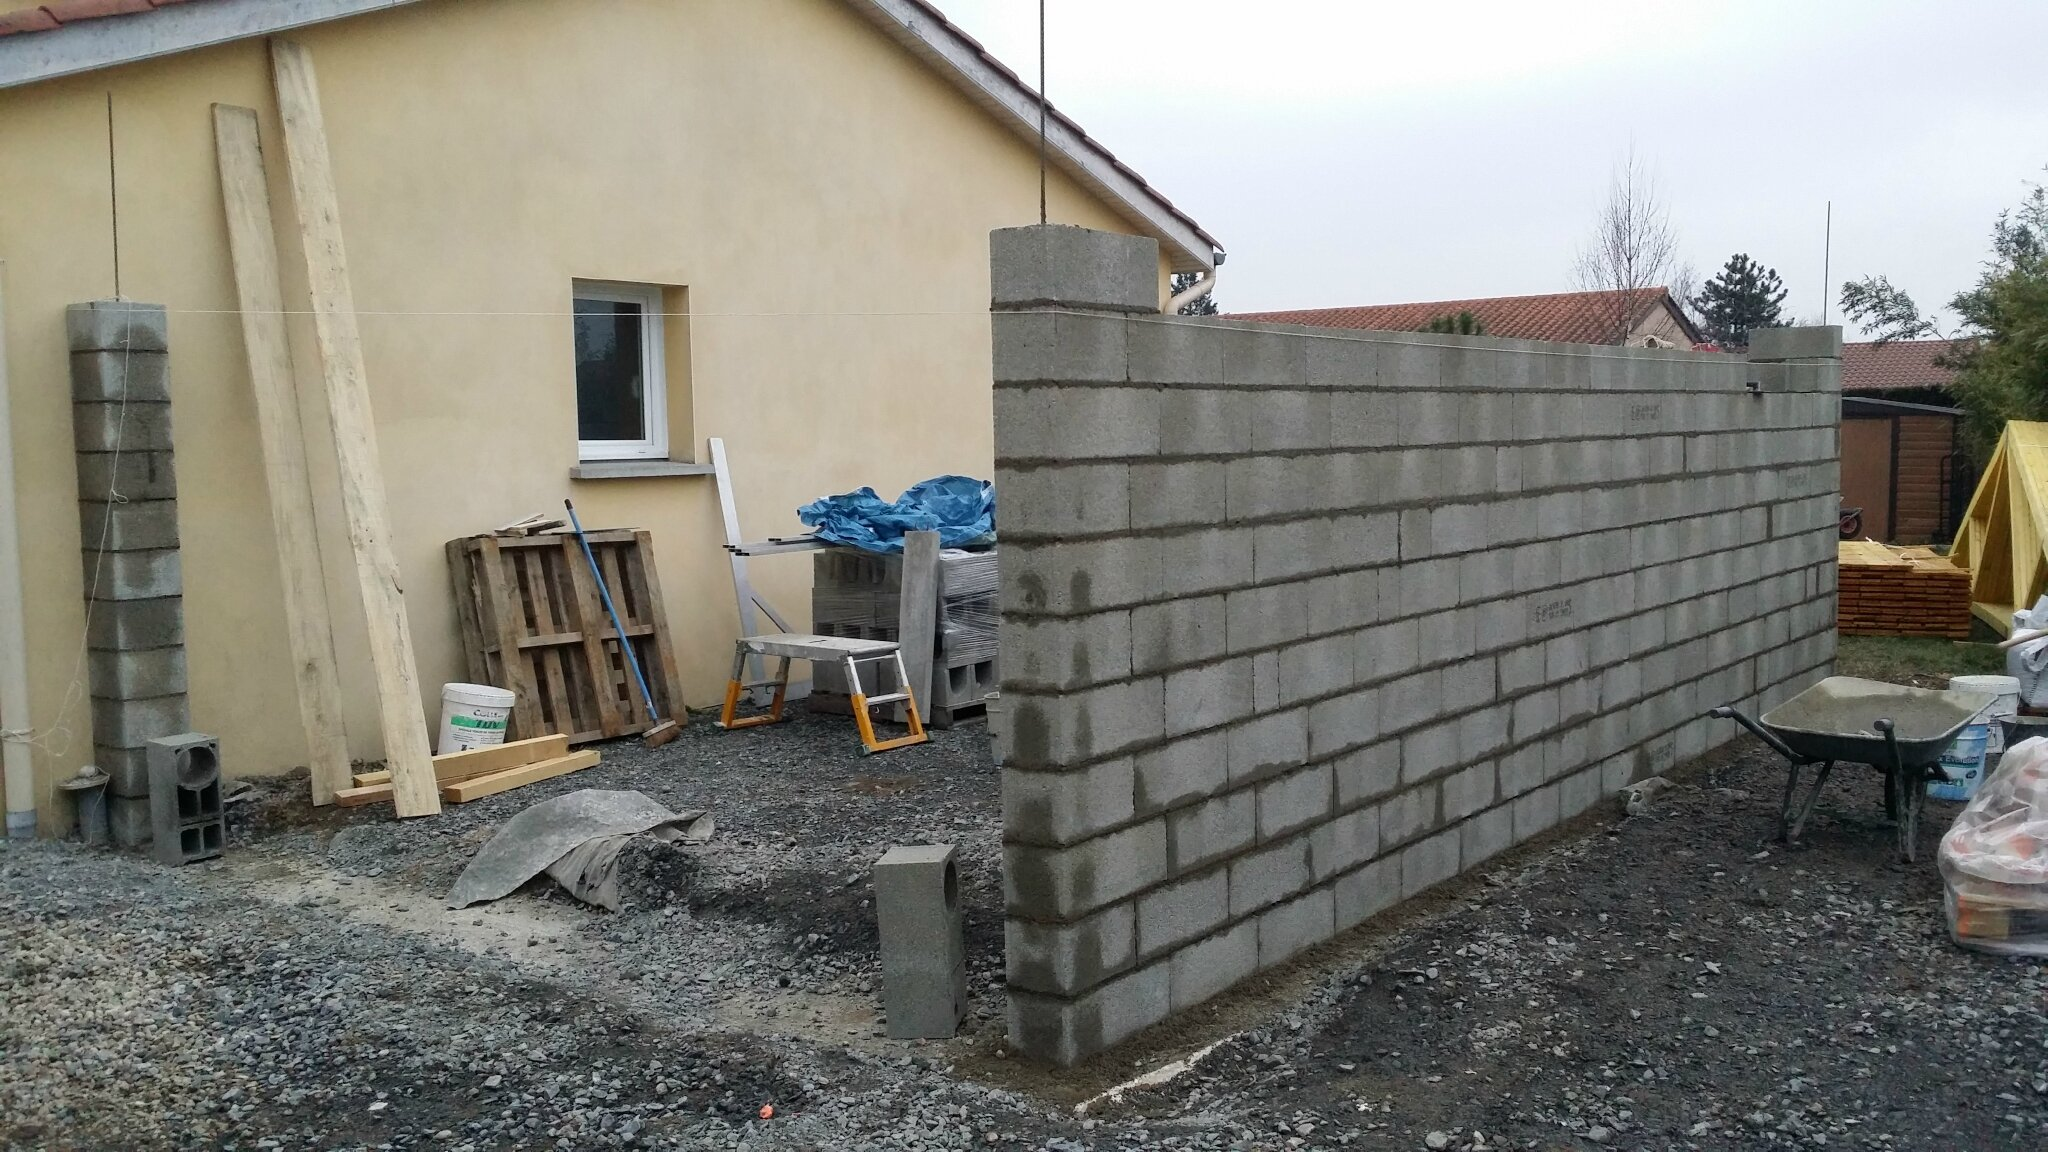 Montage de parpaing pour construction d 39 un garage for Construction garage parpaing plan